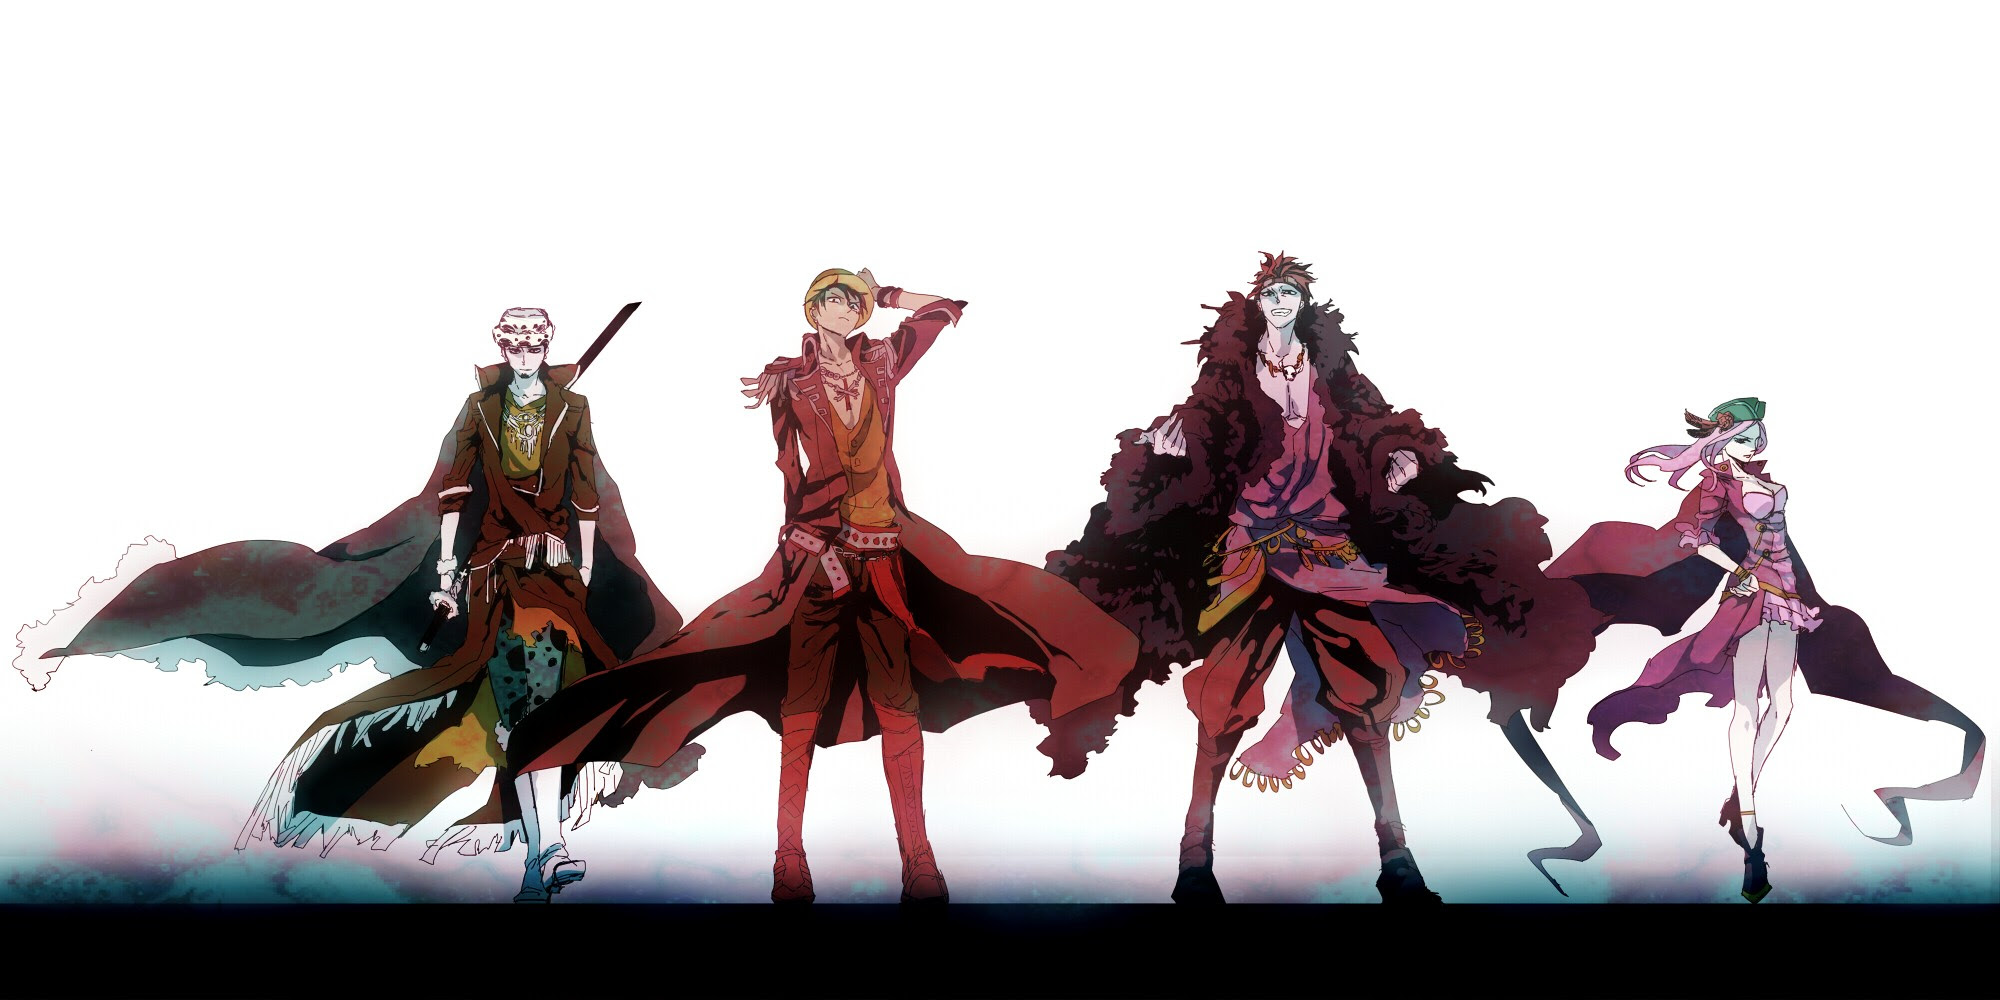 672 One Piece HD Wallpapers  Backgrounds  Wallpaper Abyss  Page 3